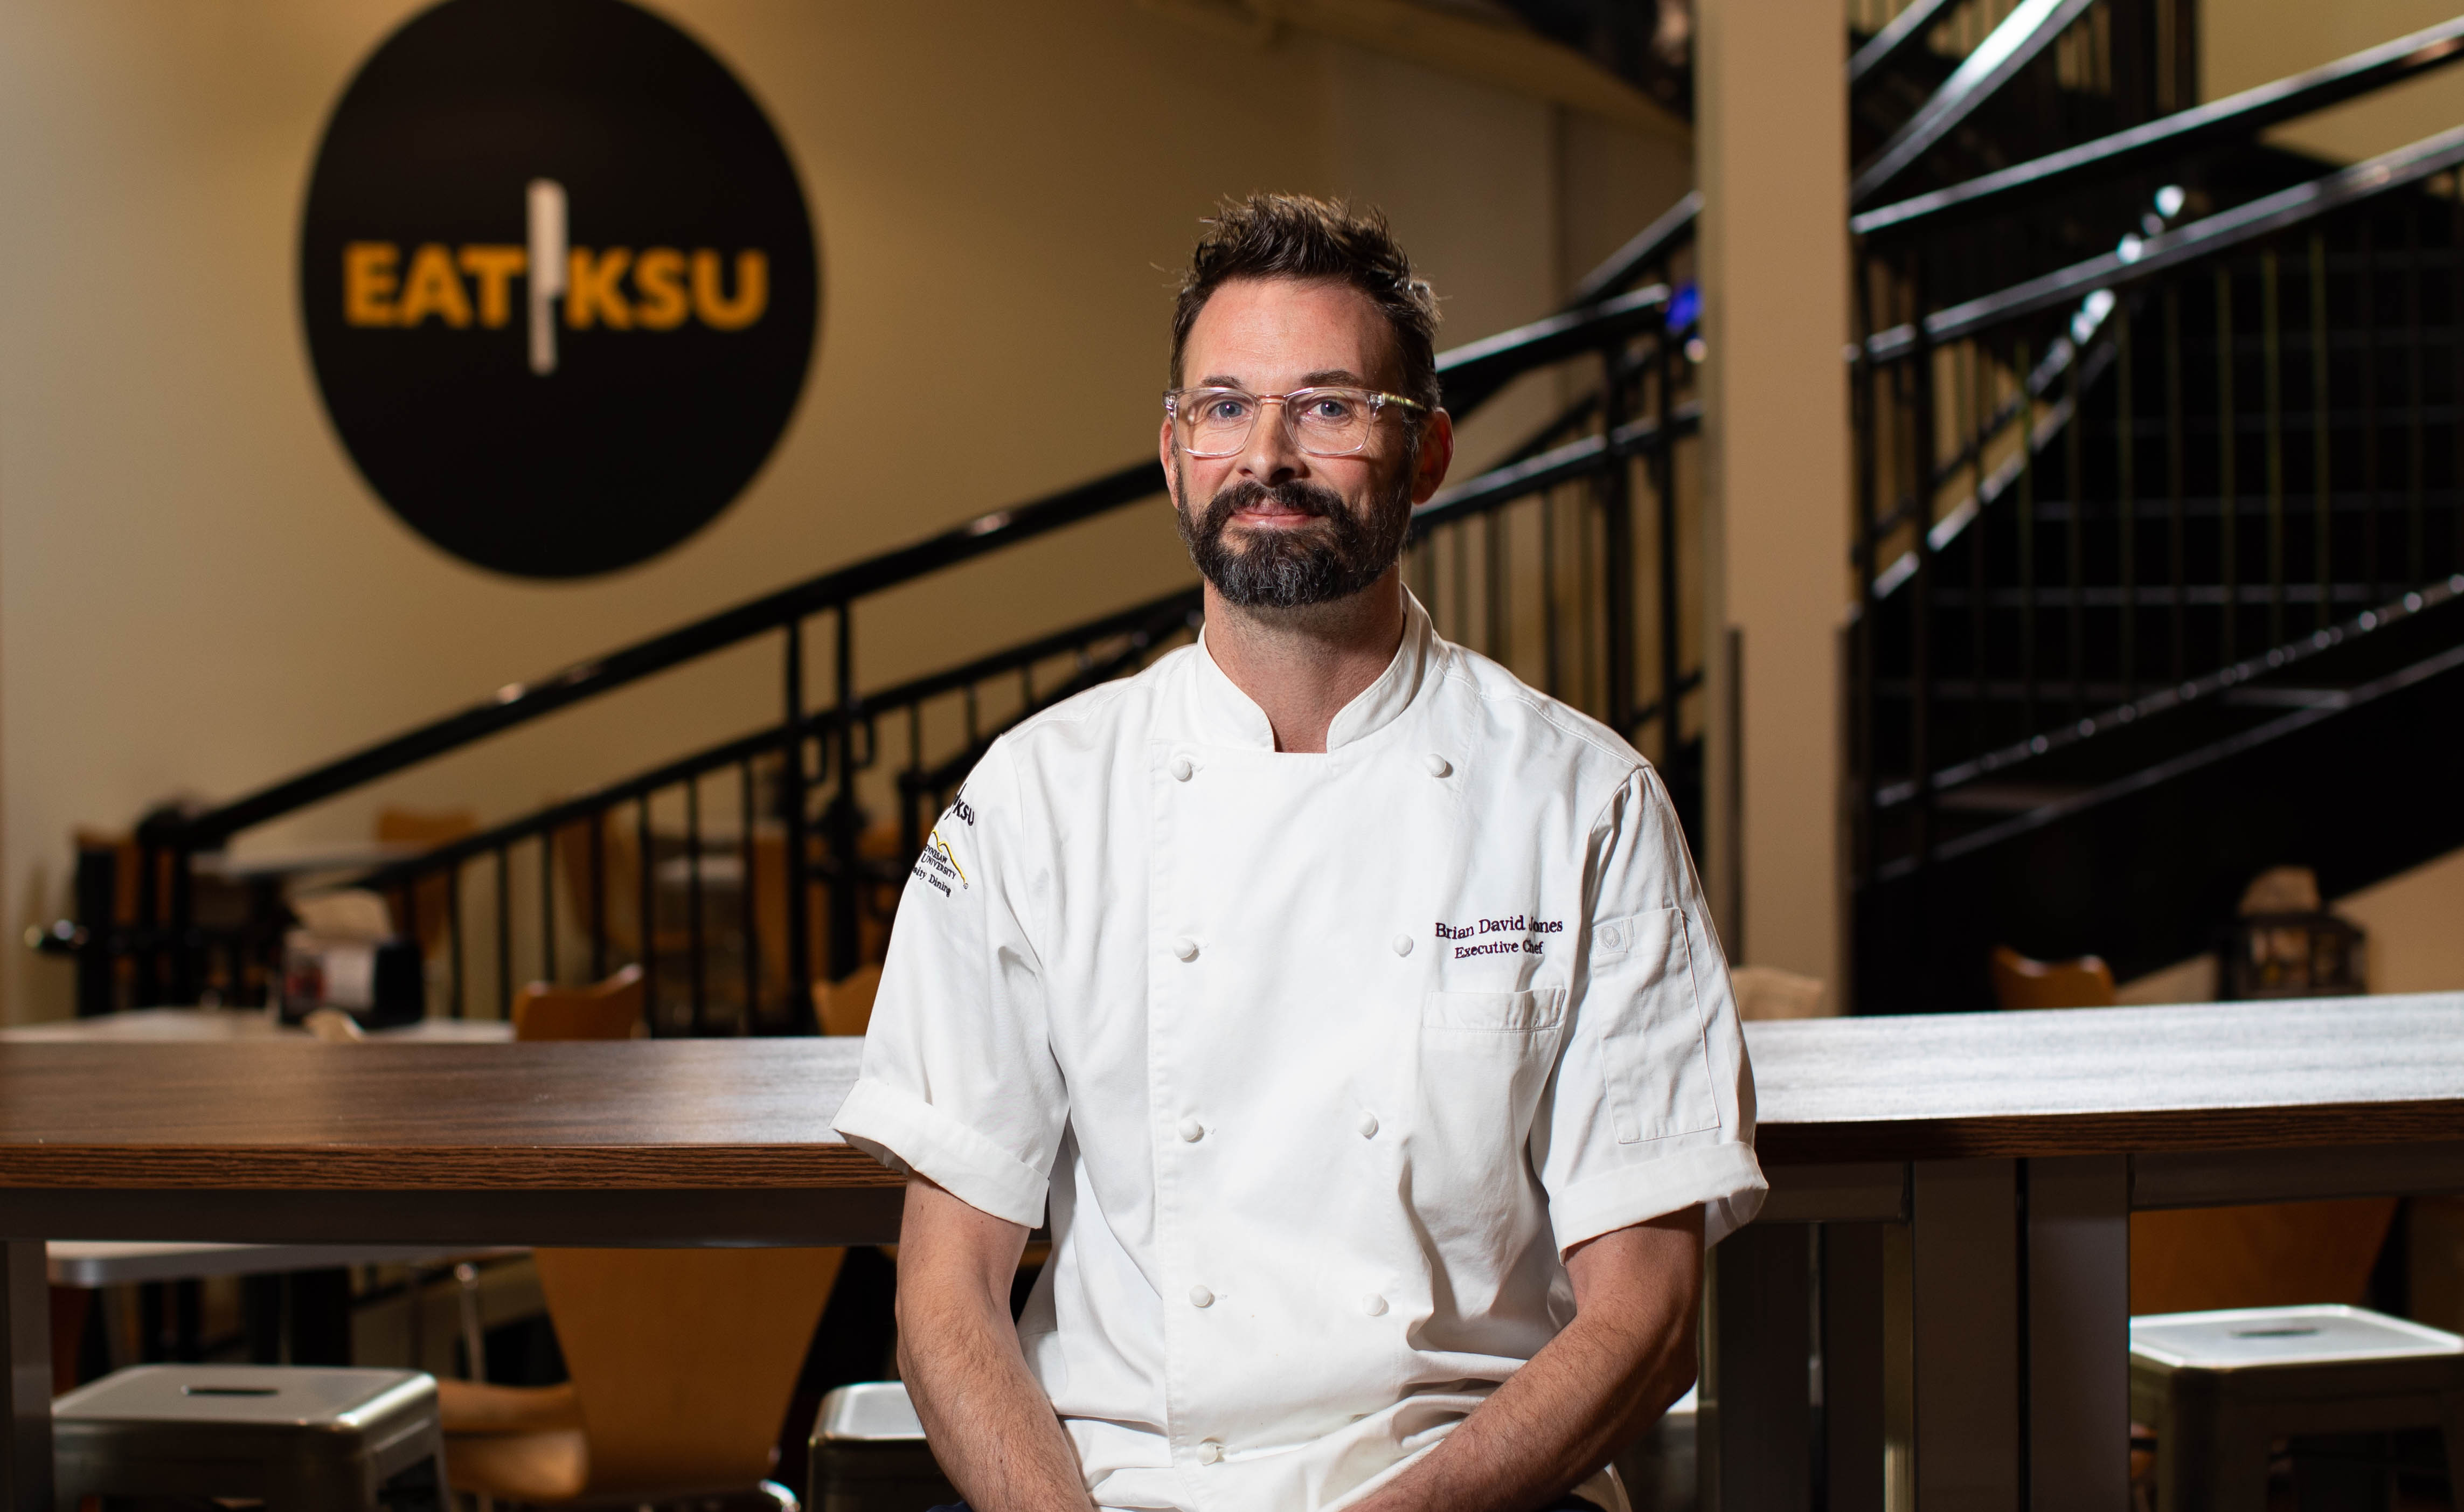 Executive Chef Brian Jones at The Commons on the Kennesaw Campus